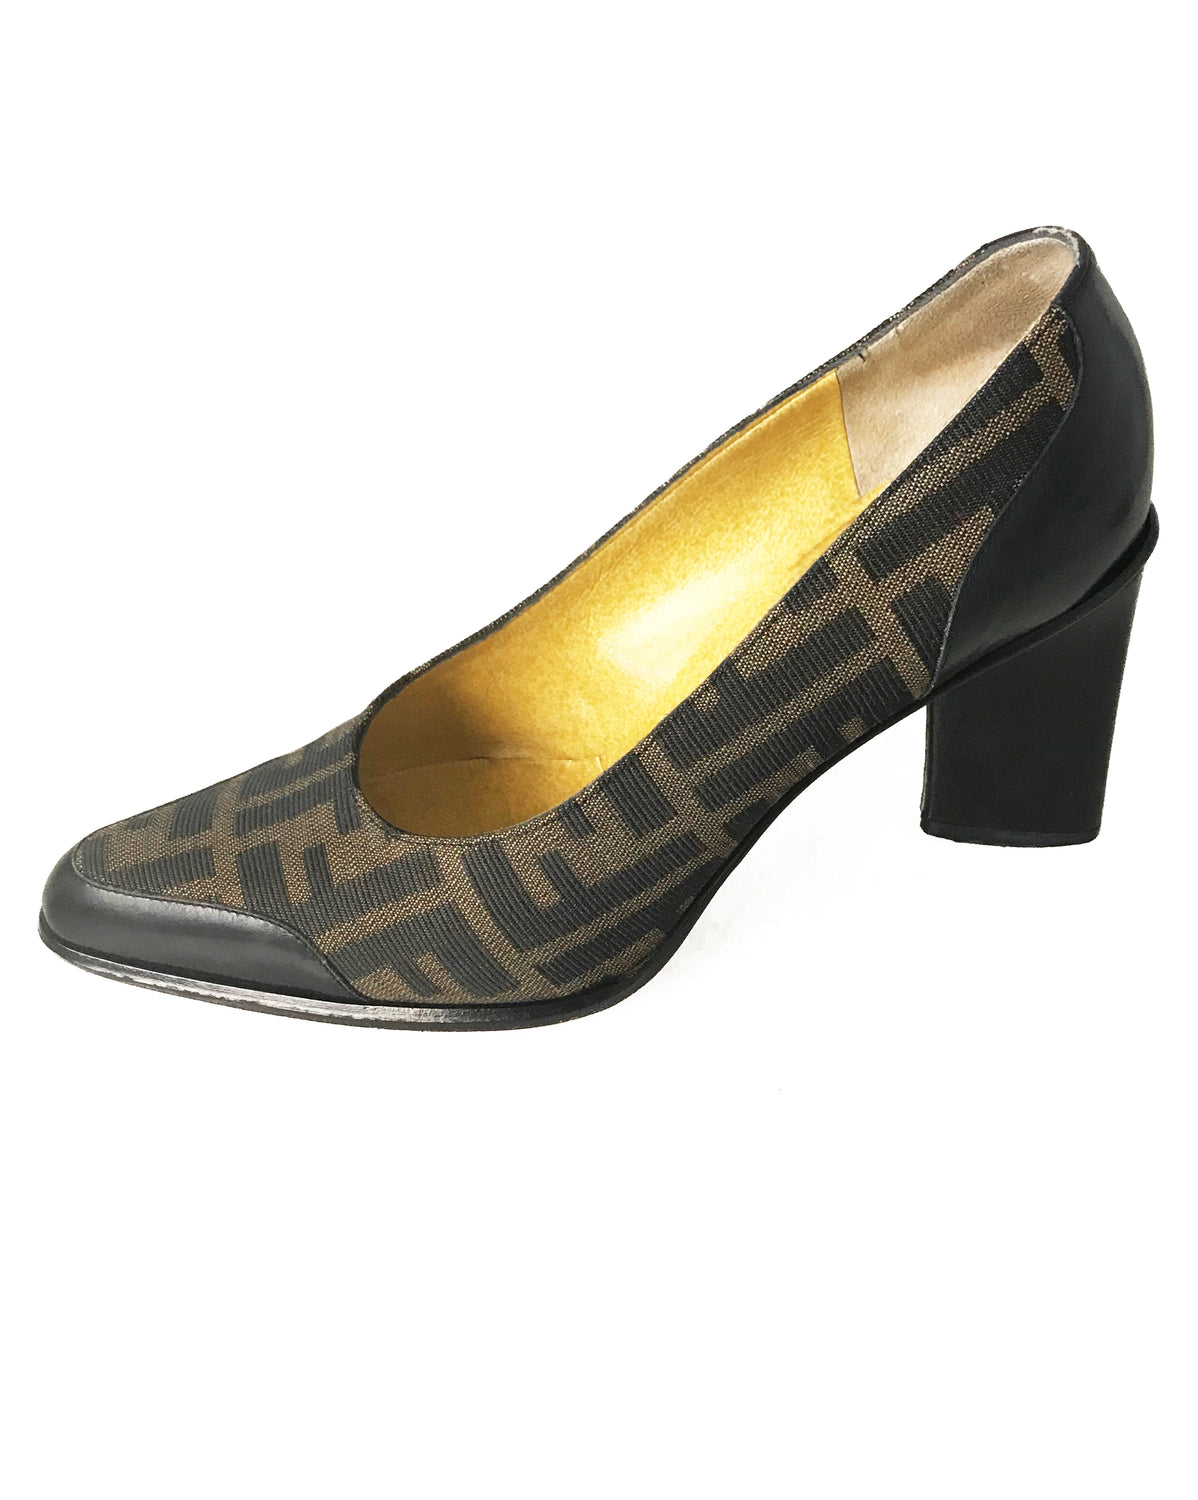 04b5f48d25d0 Fruit Vintage Fendi Zucca Print High Heel Pump Shoes